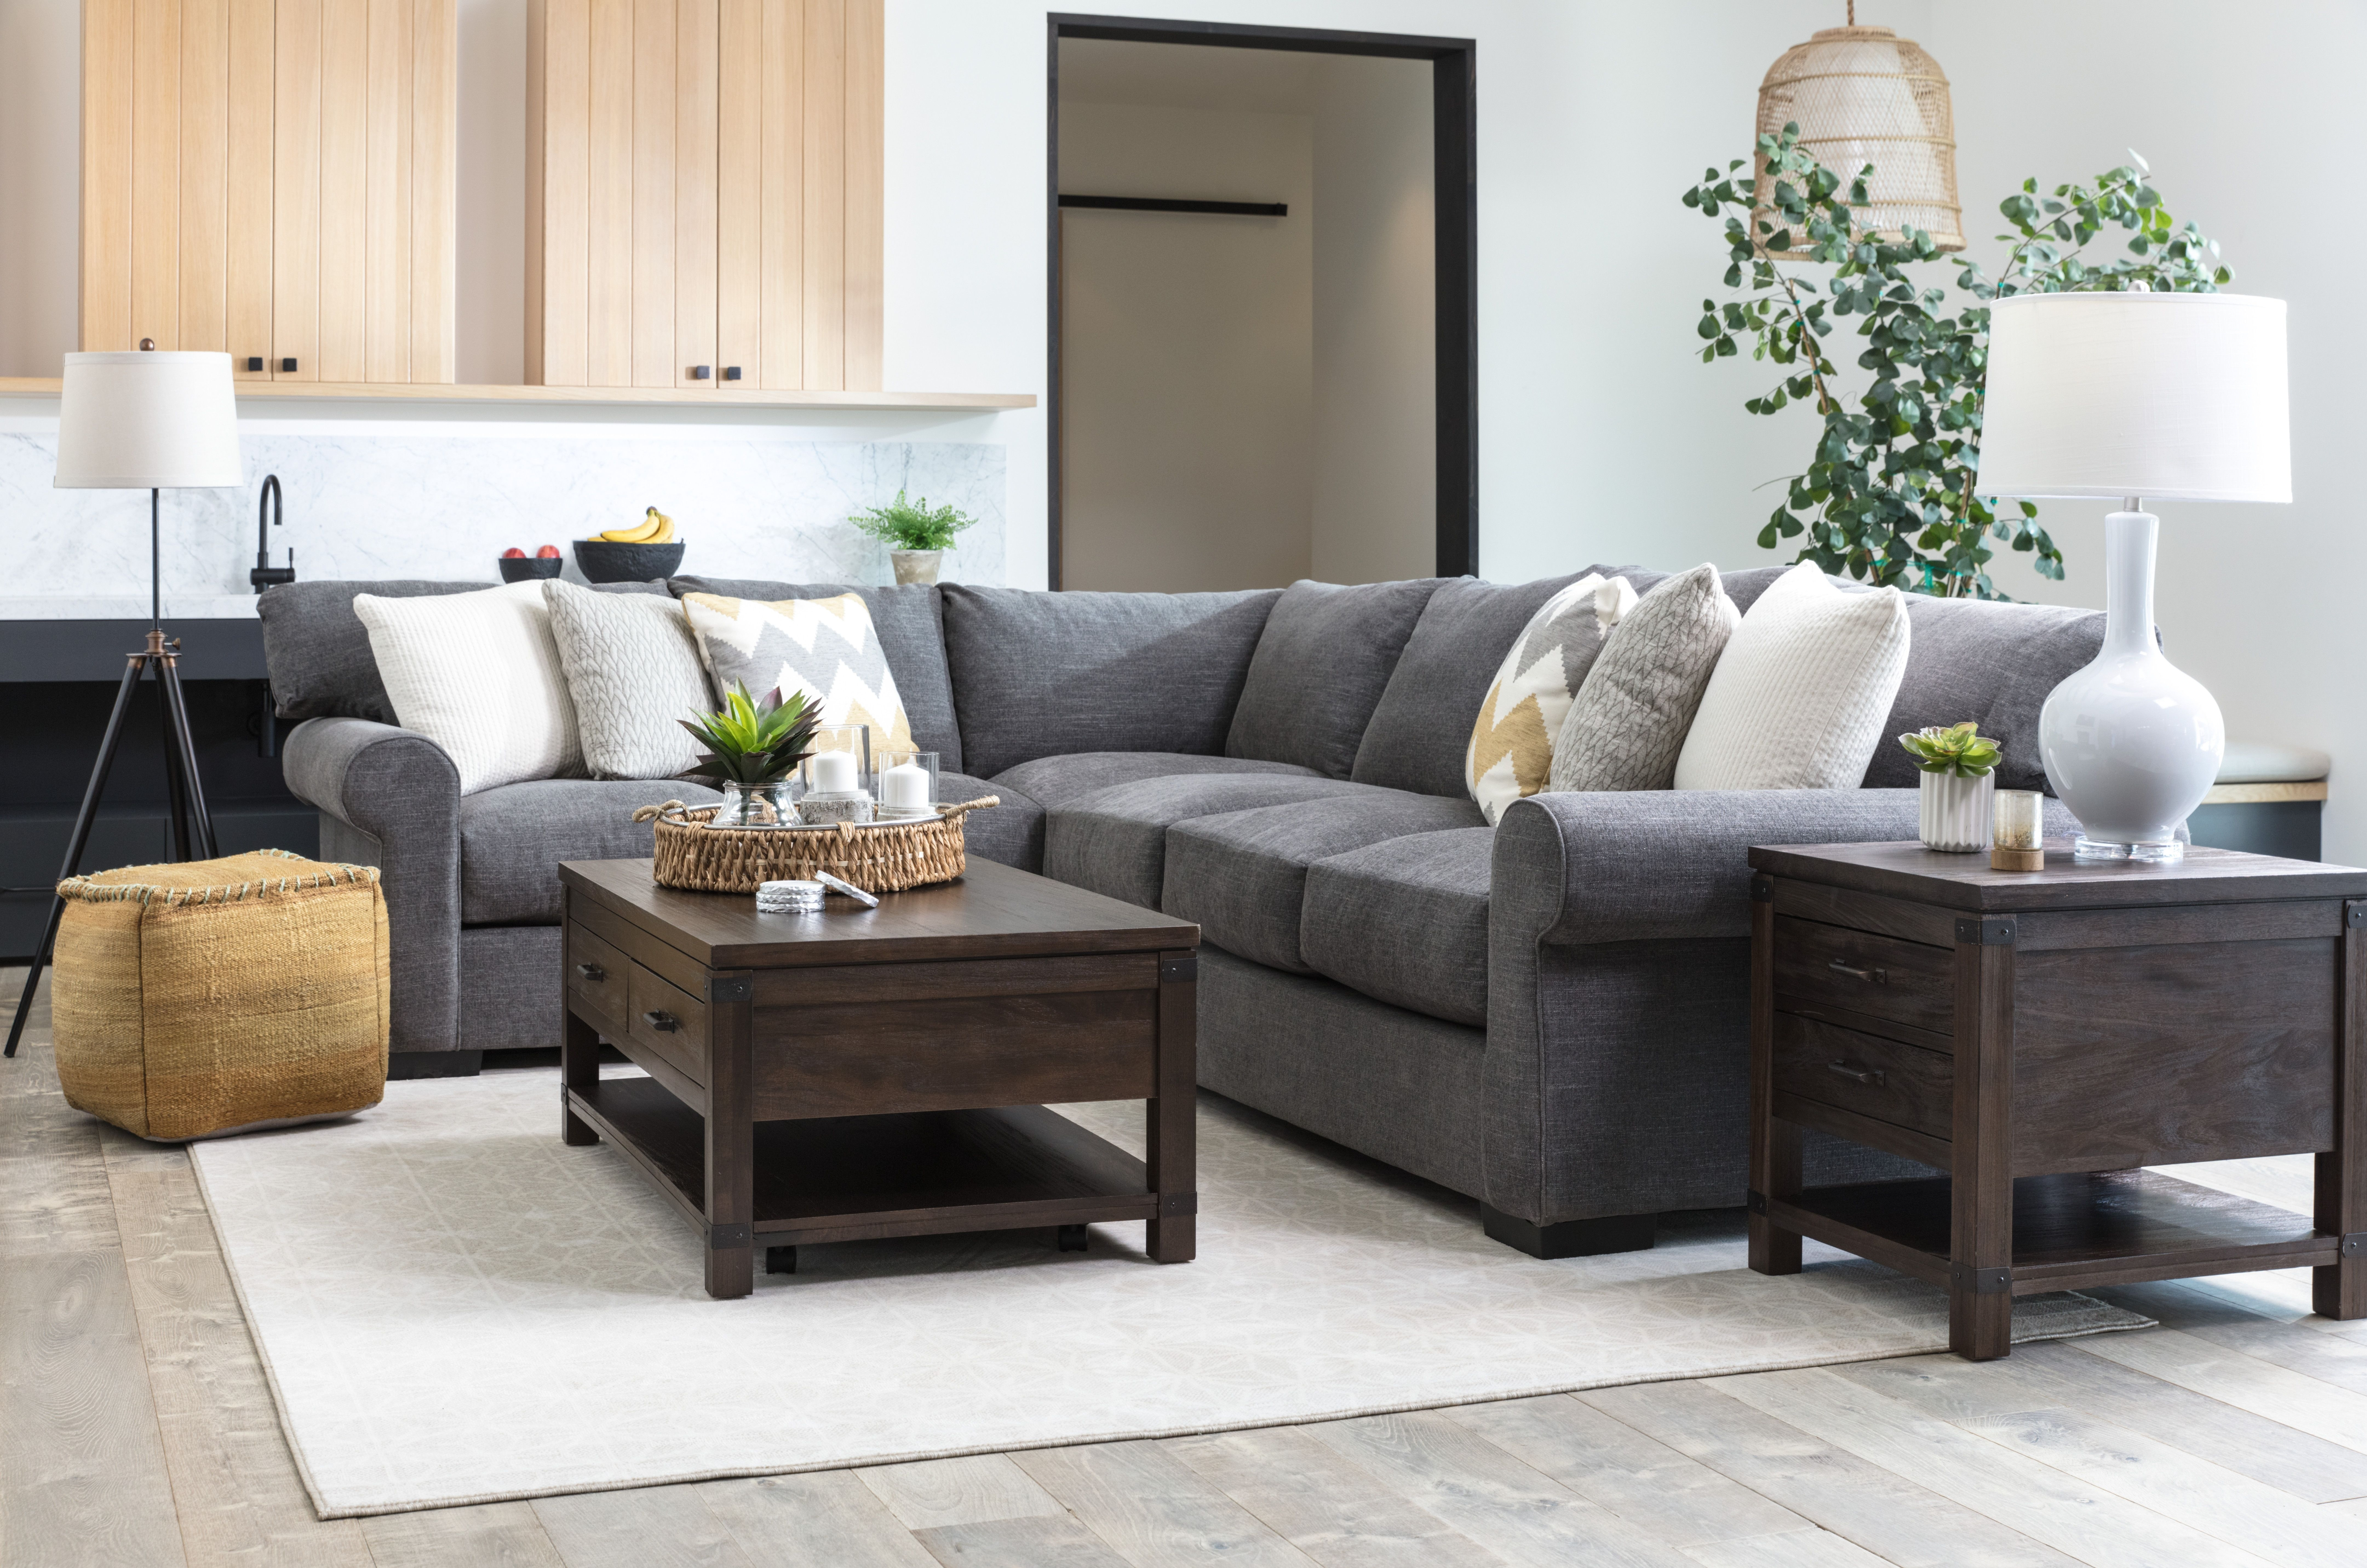 Aurora 2-Piece Sectional. The Casual Roll-Arm Frame Of This Grey throughout Aurora 2 Piece Sectionals (Image 6 of 30)